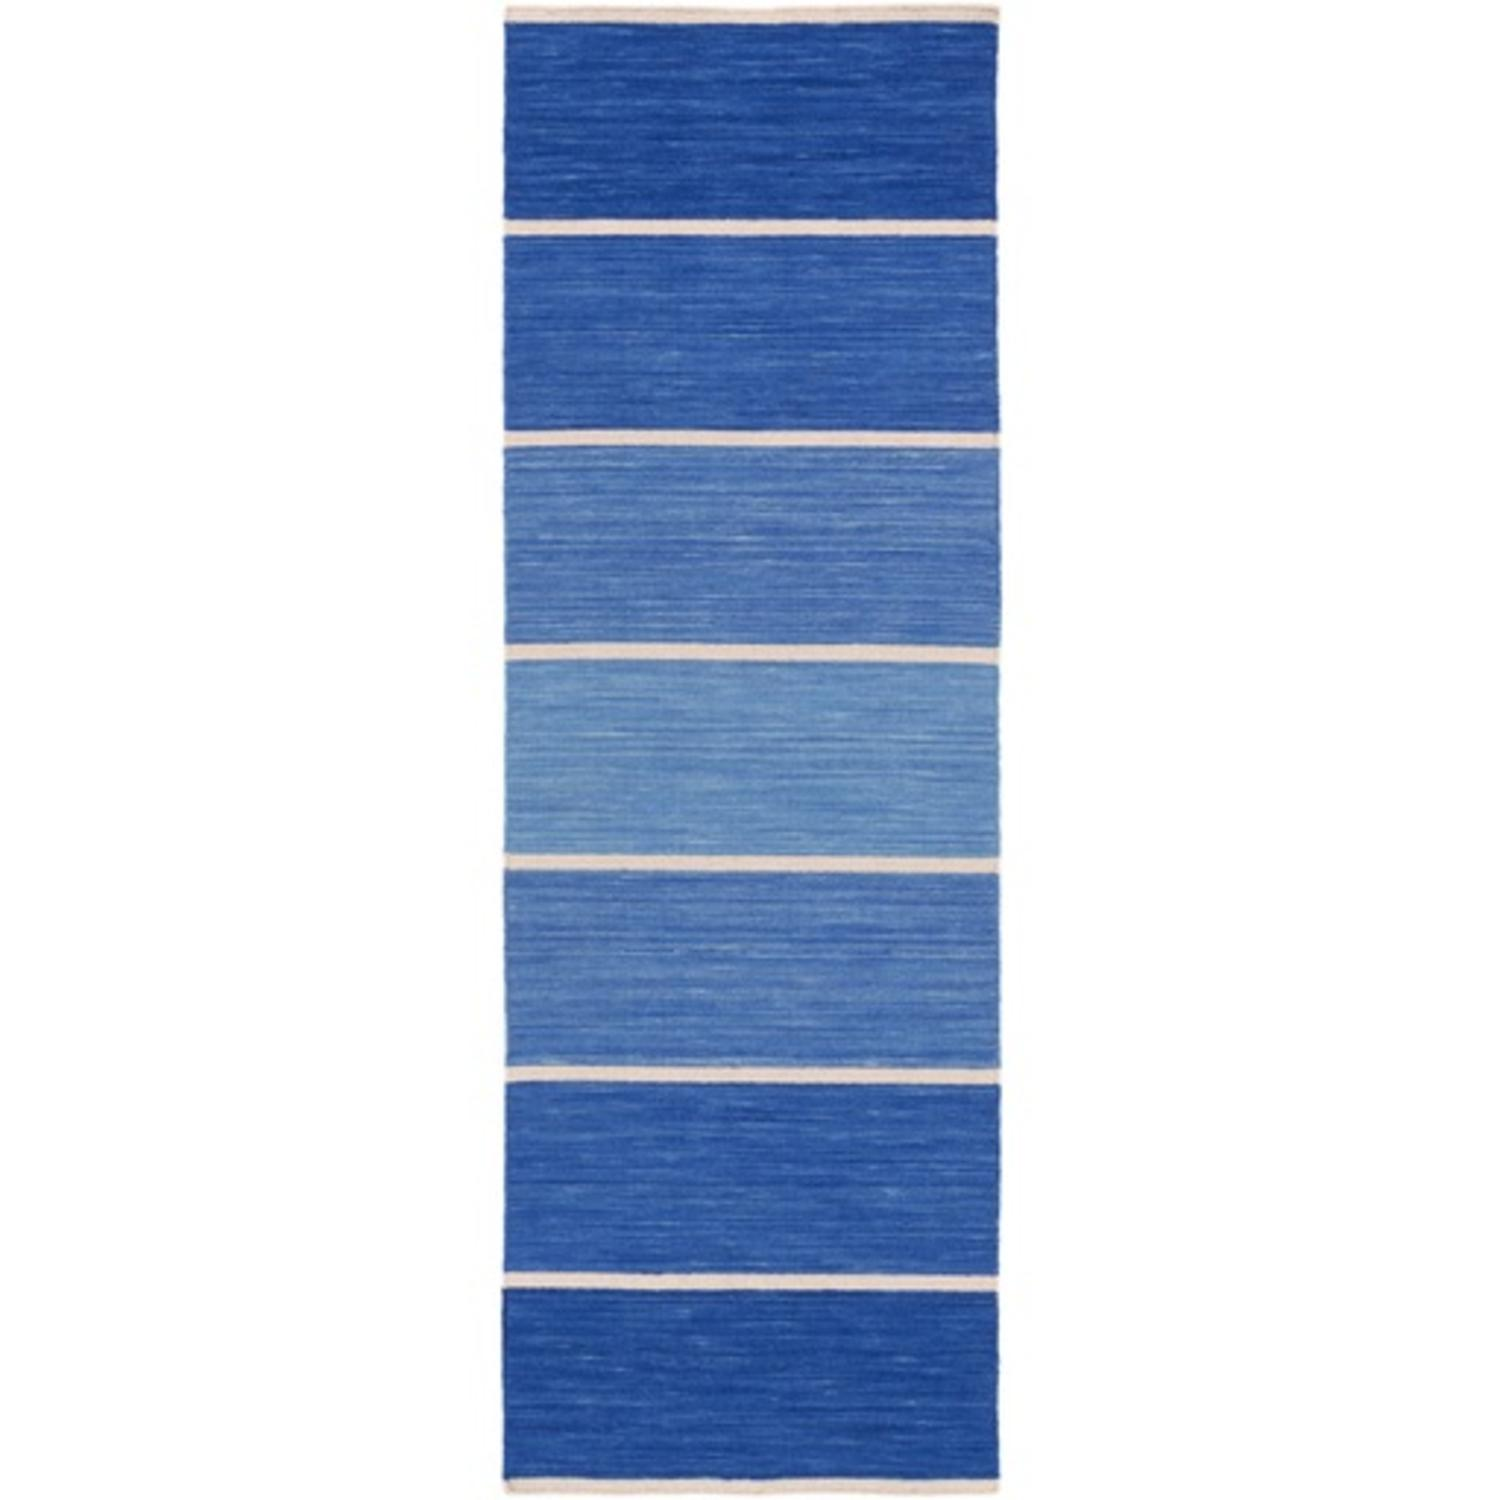 2.5' x 8' Brillante Sky and Midnight Blue Hand Woven Area Throw Rug Runner